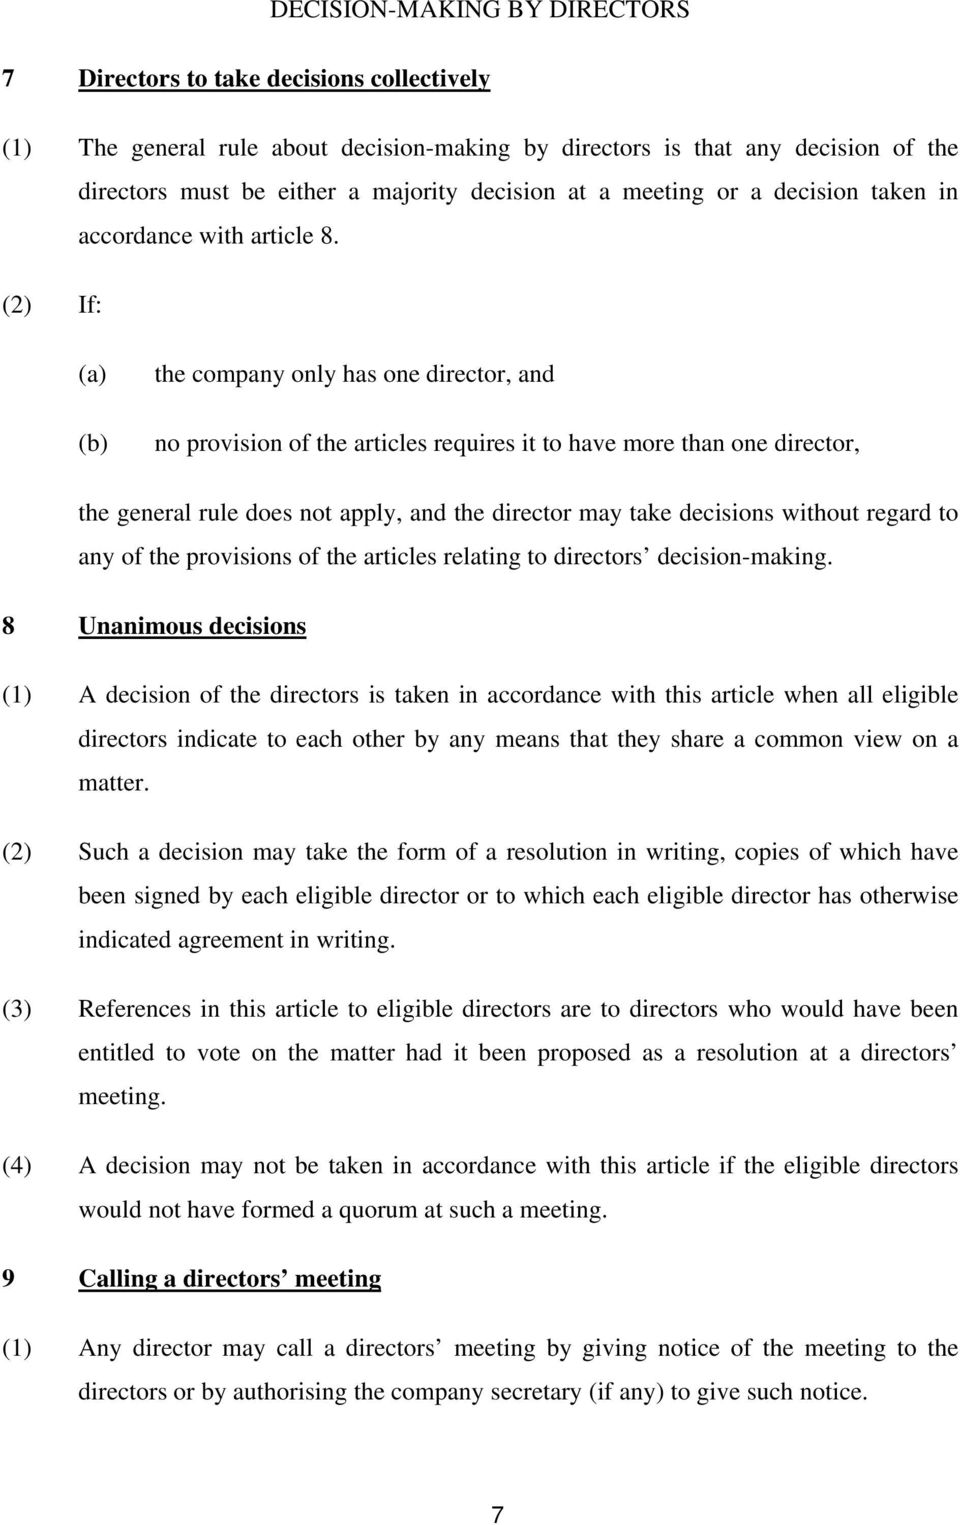 (2) If: the company only has one director, and no provision of the articles requires it to have more than one director, the general rule does not apply, and the director may take decisions without